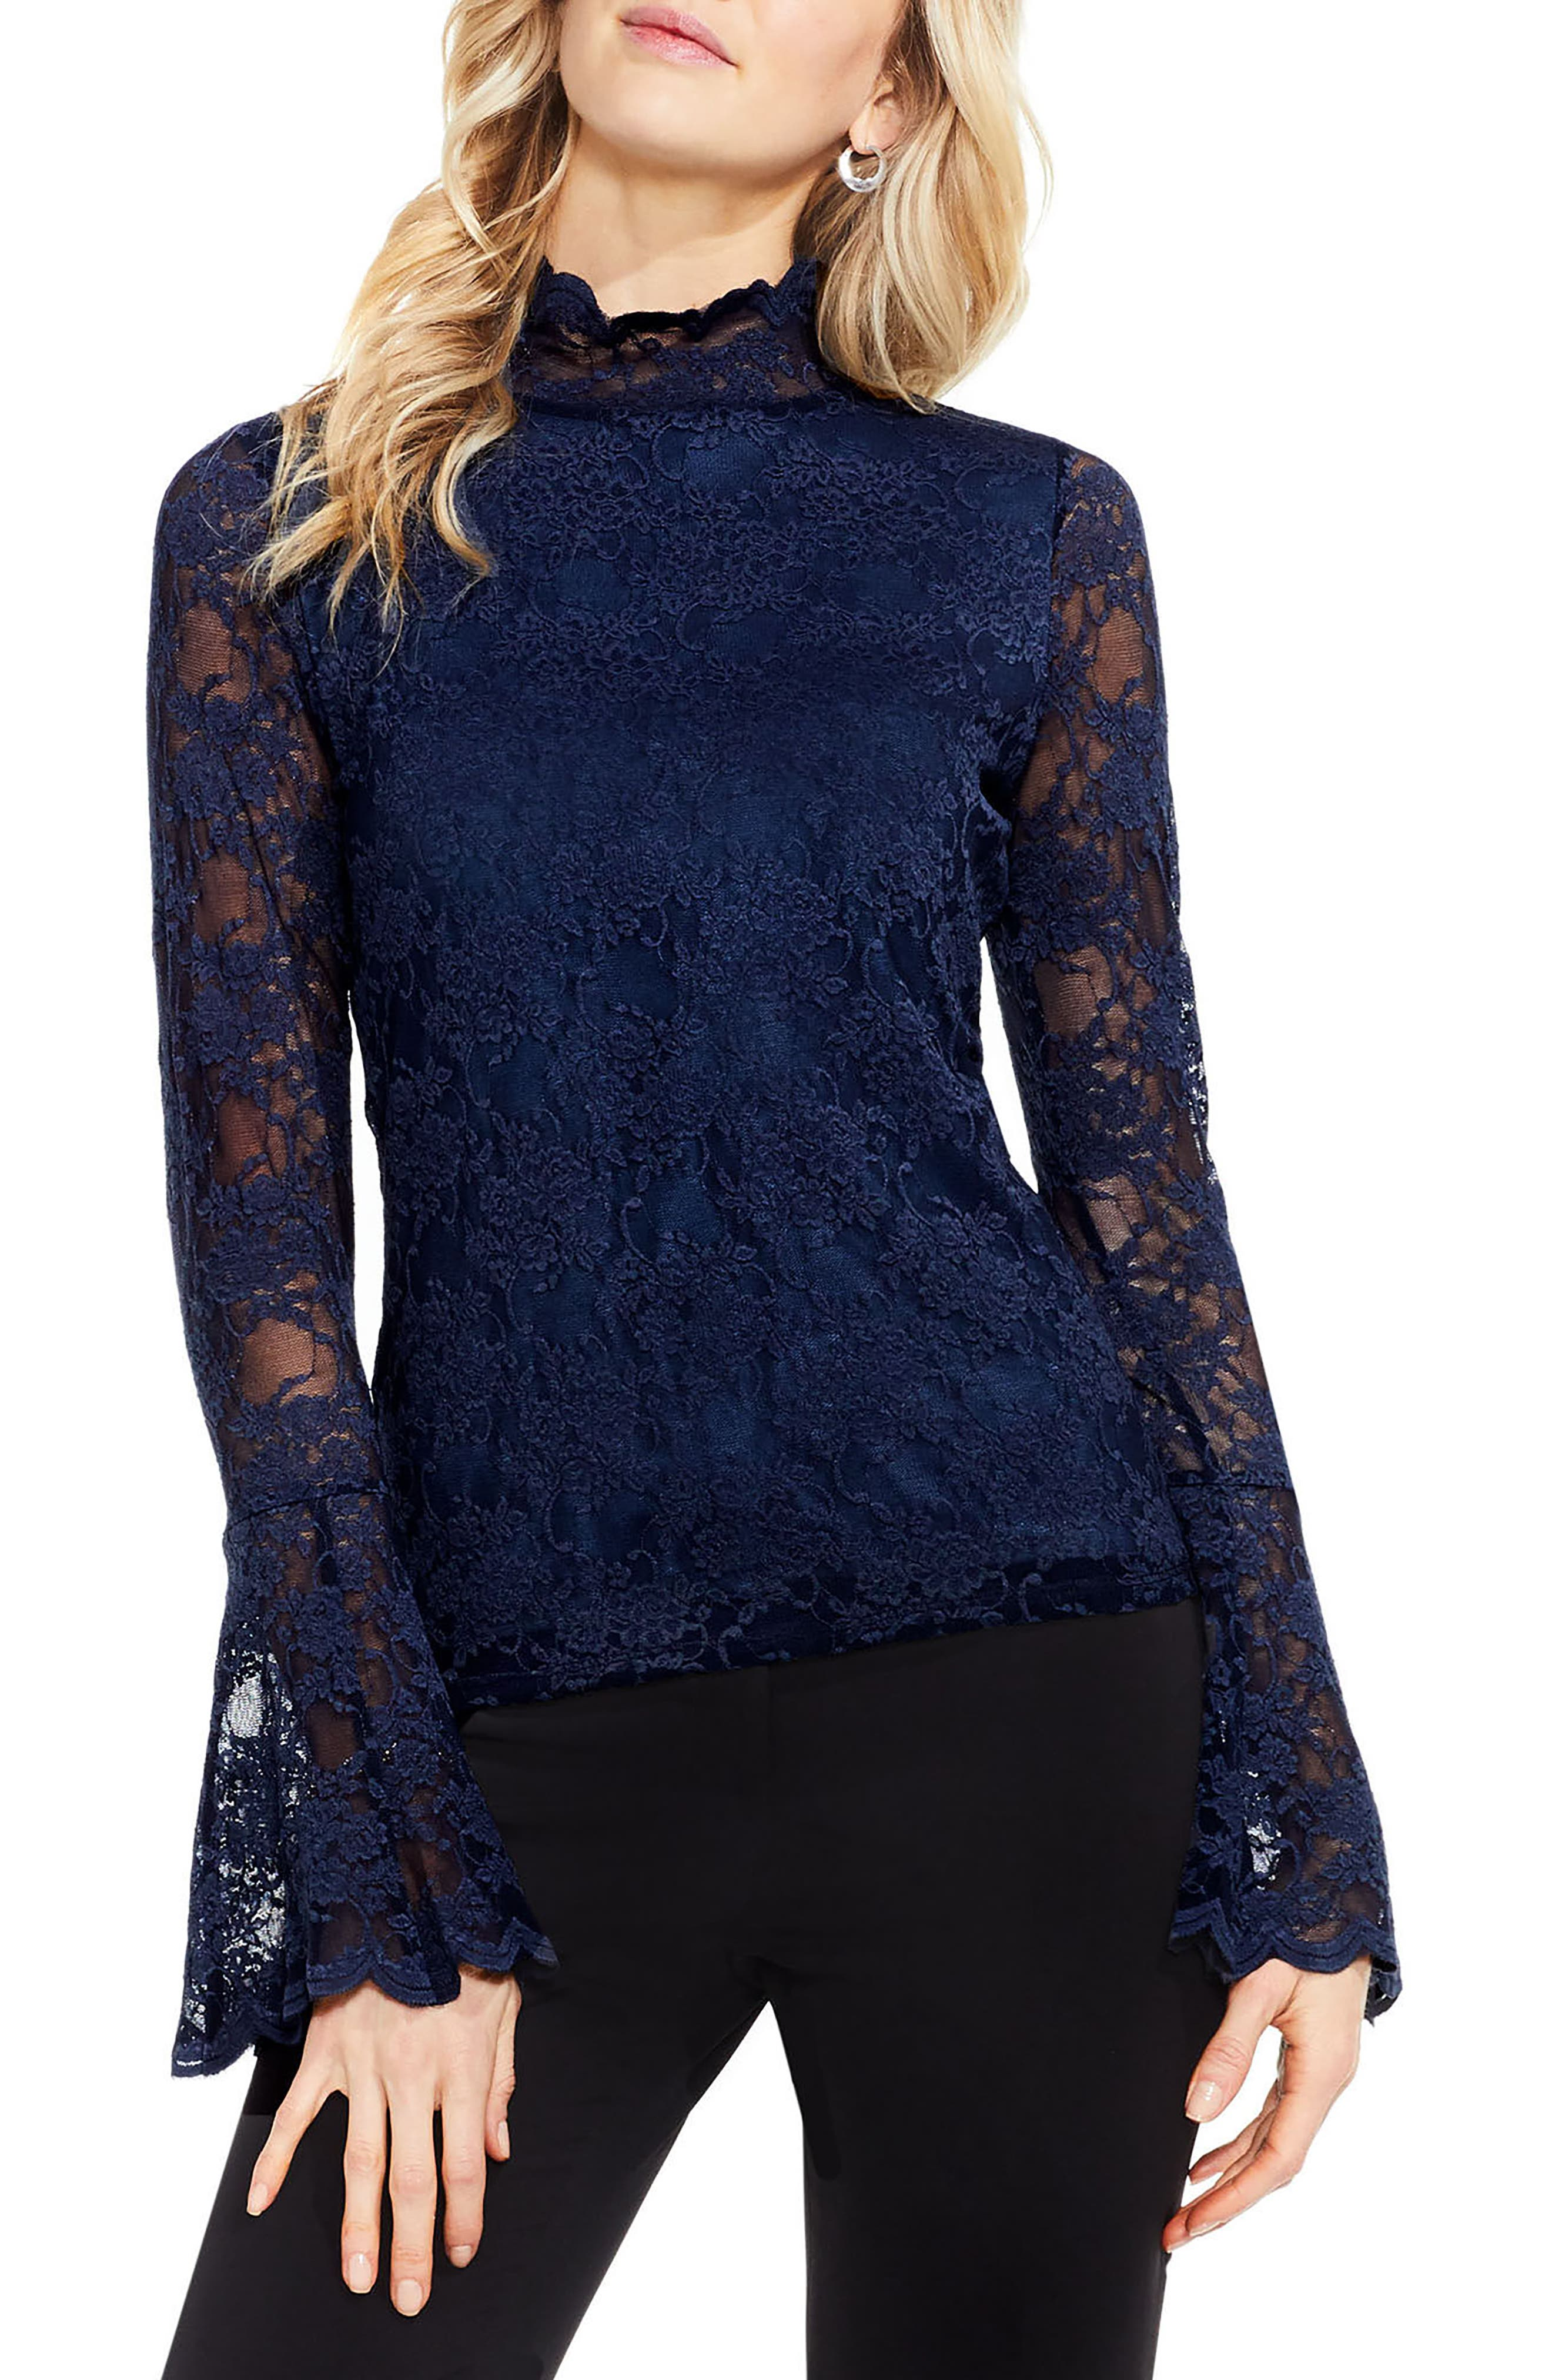 Vince Camuto Bell Sleeve Lace Top (Regular & Petite)